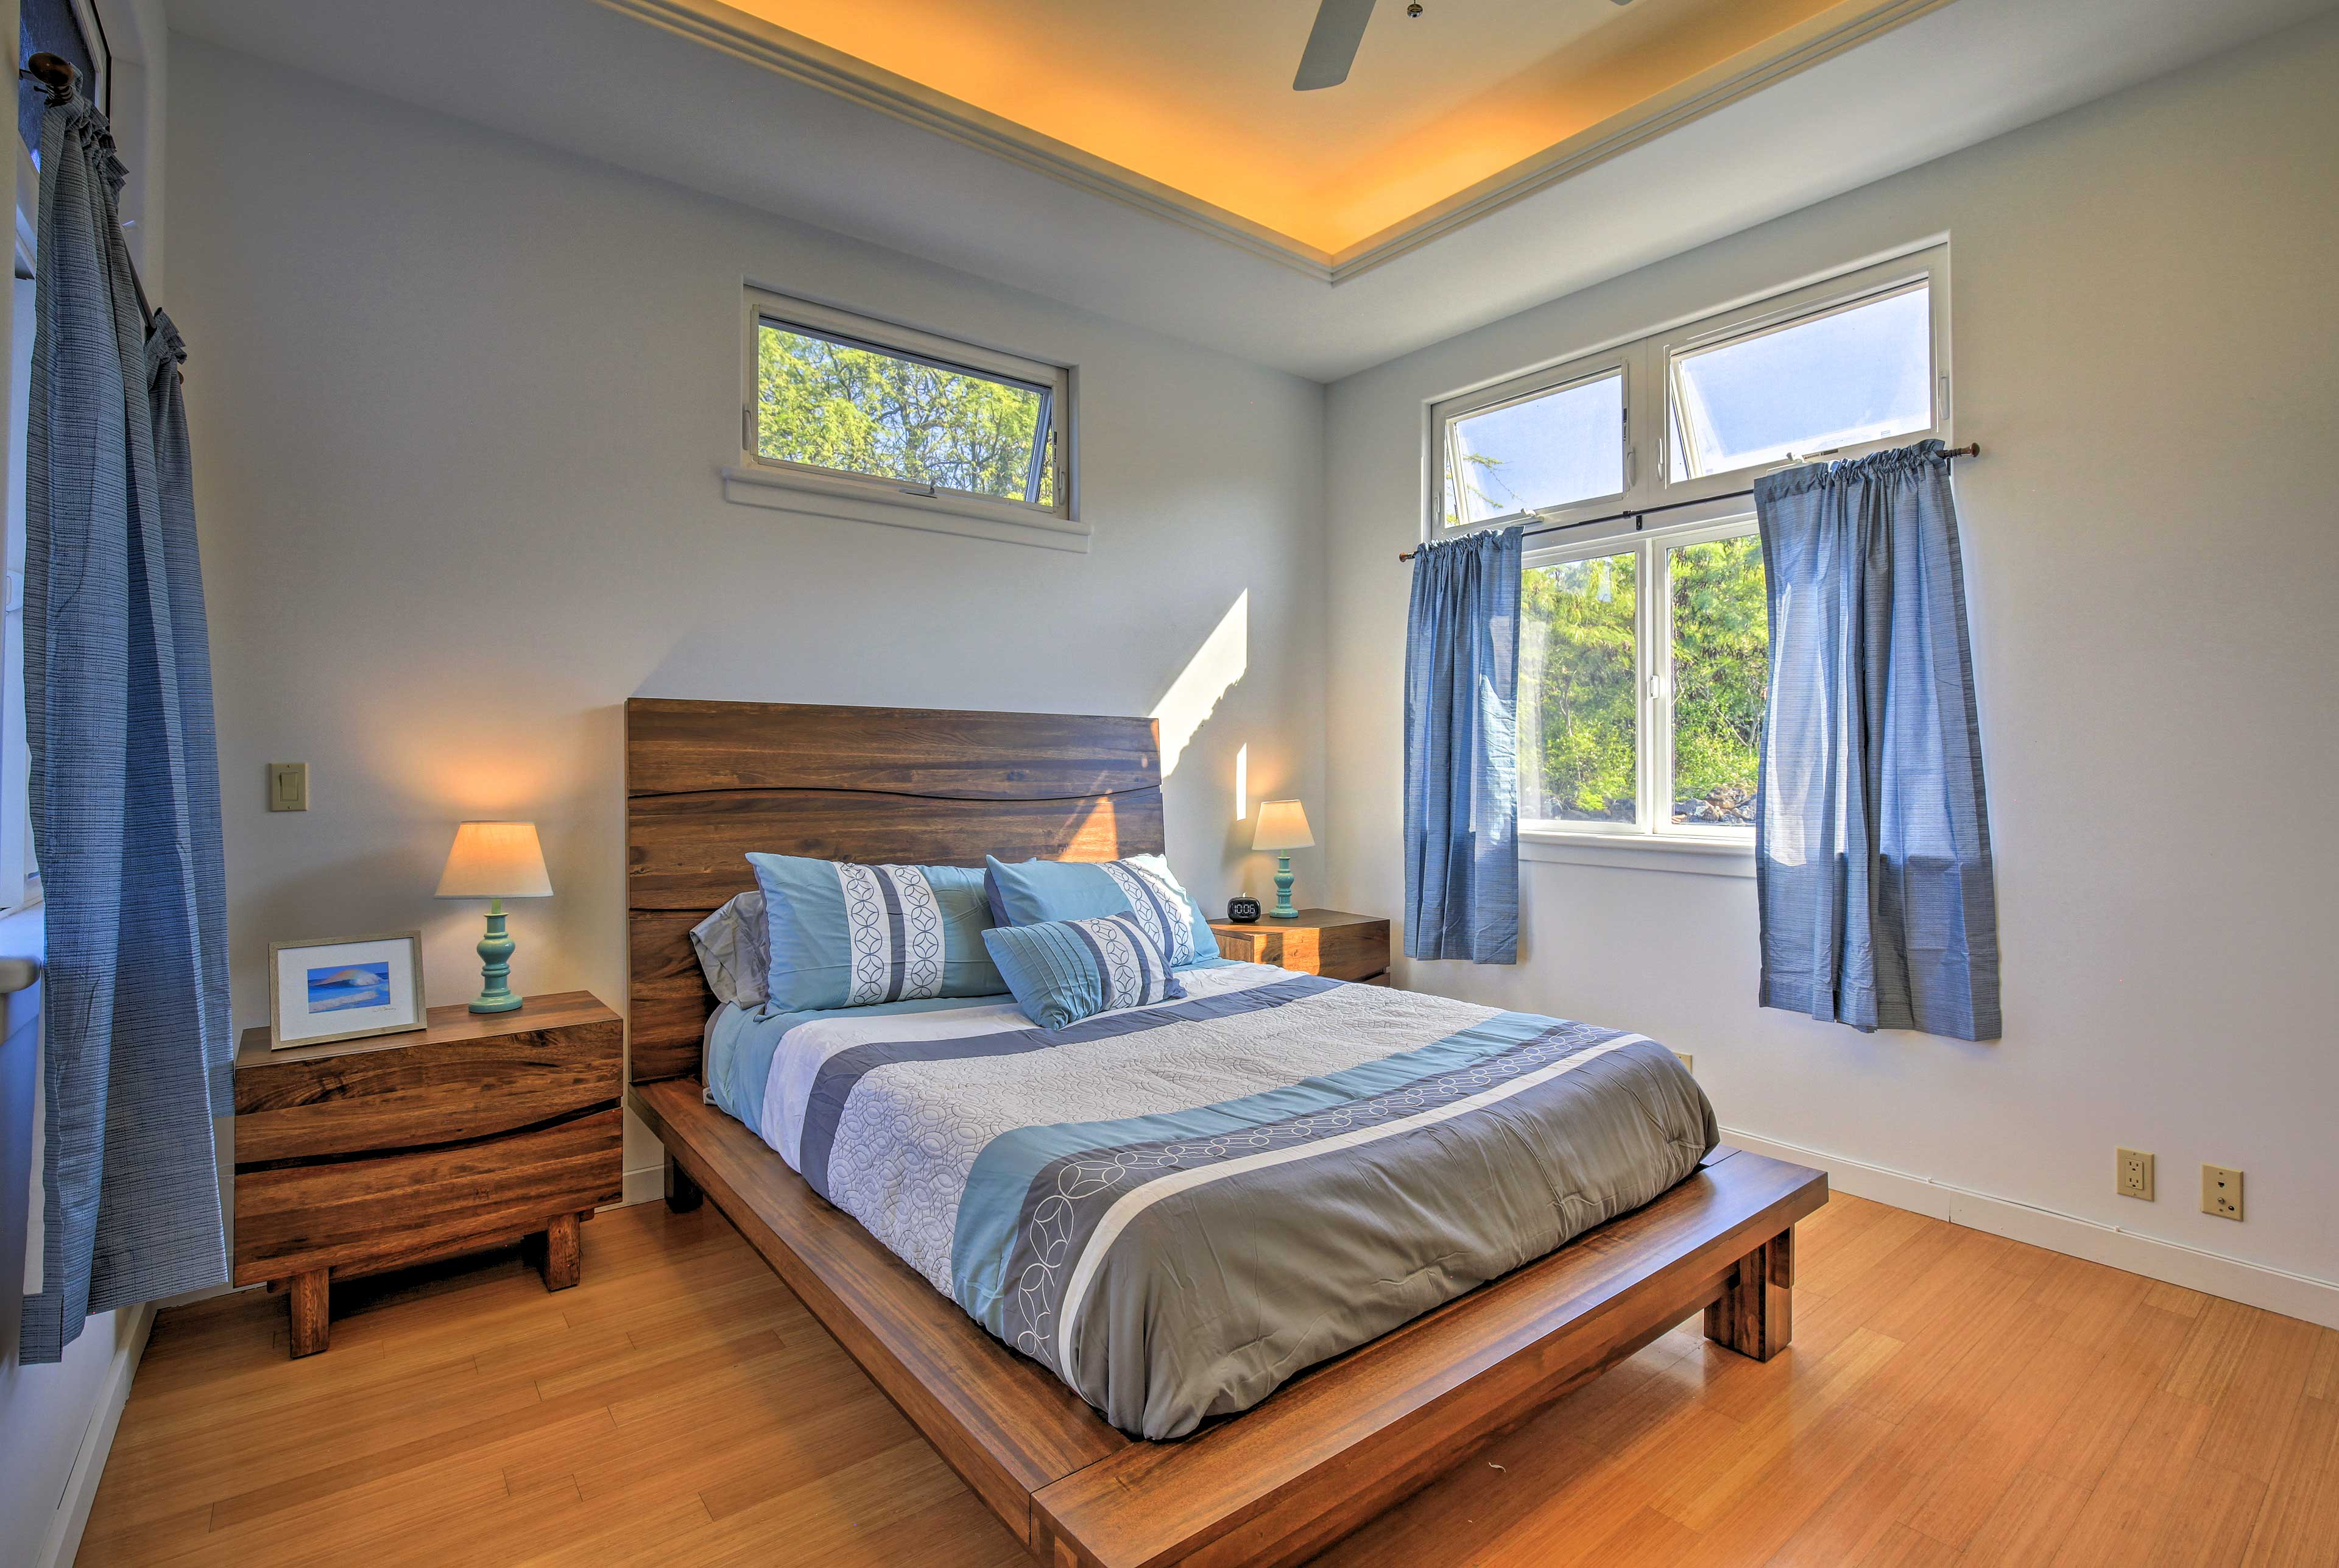 The bedroom is equipped with a comfortable queen-sized bed.